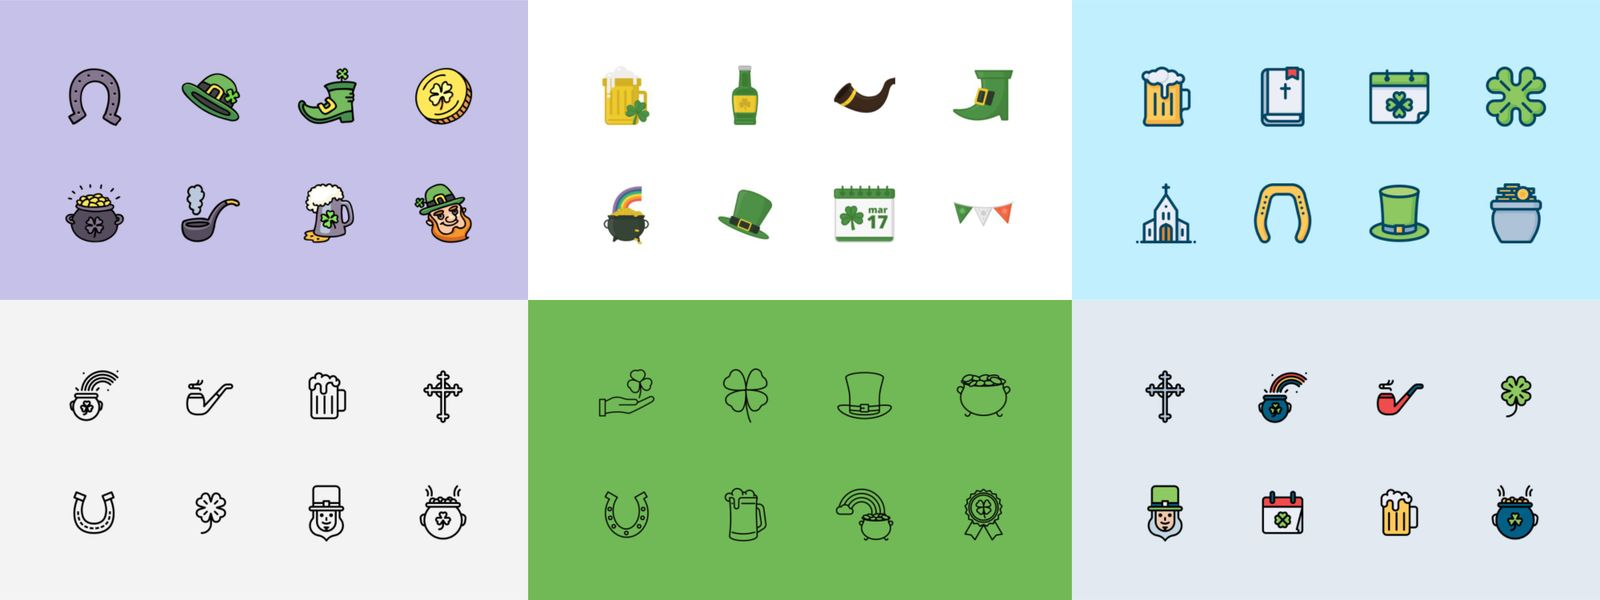 Best St. Patrick's Day Iconsets